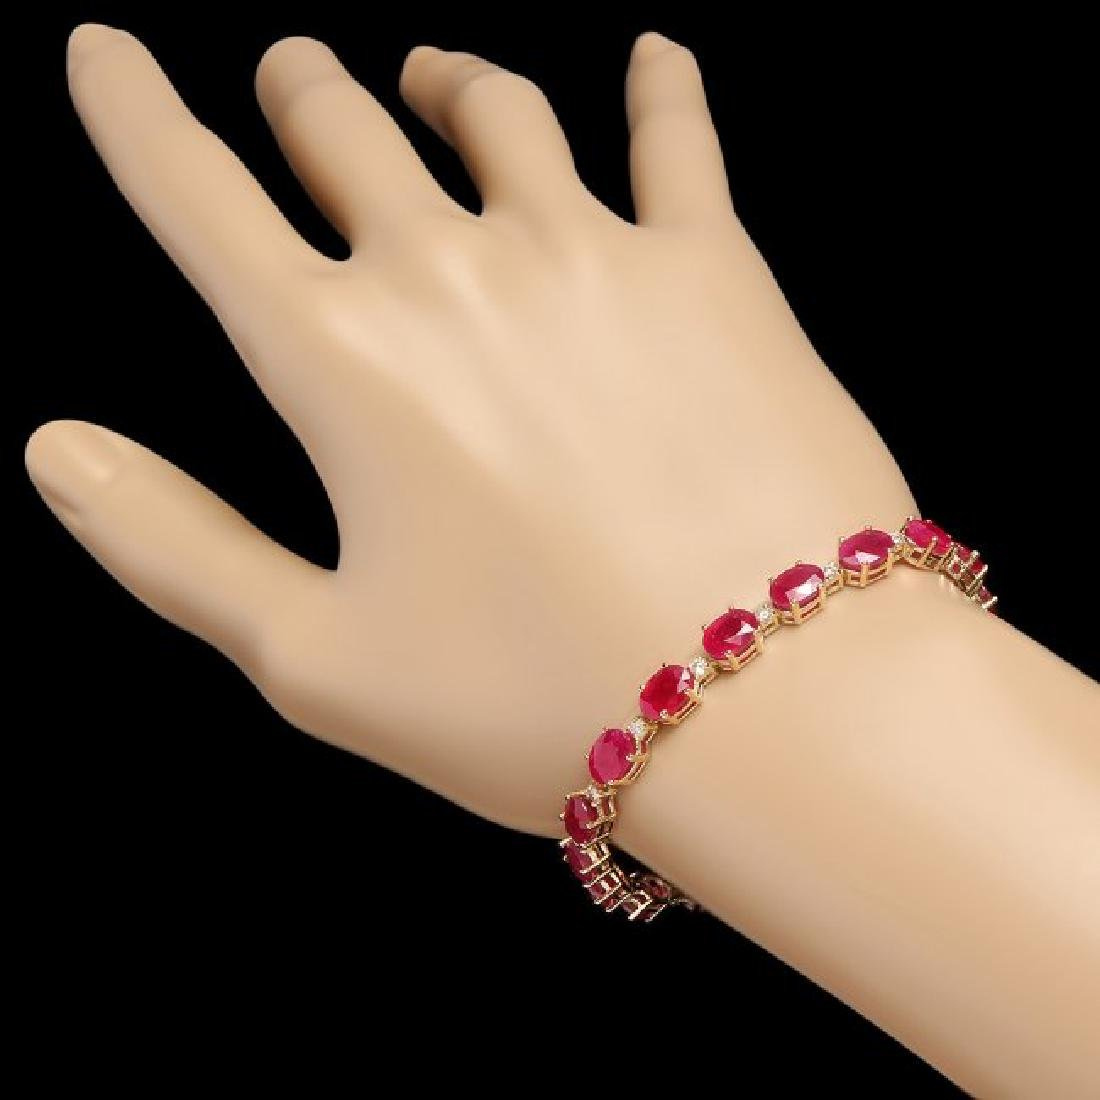 14k Gold 23.50ct Ruby 0.80ct Diamond Bracelet - 3